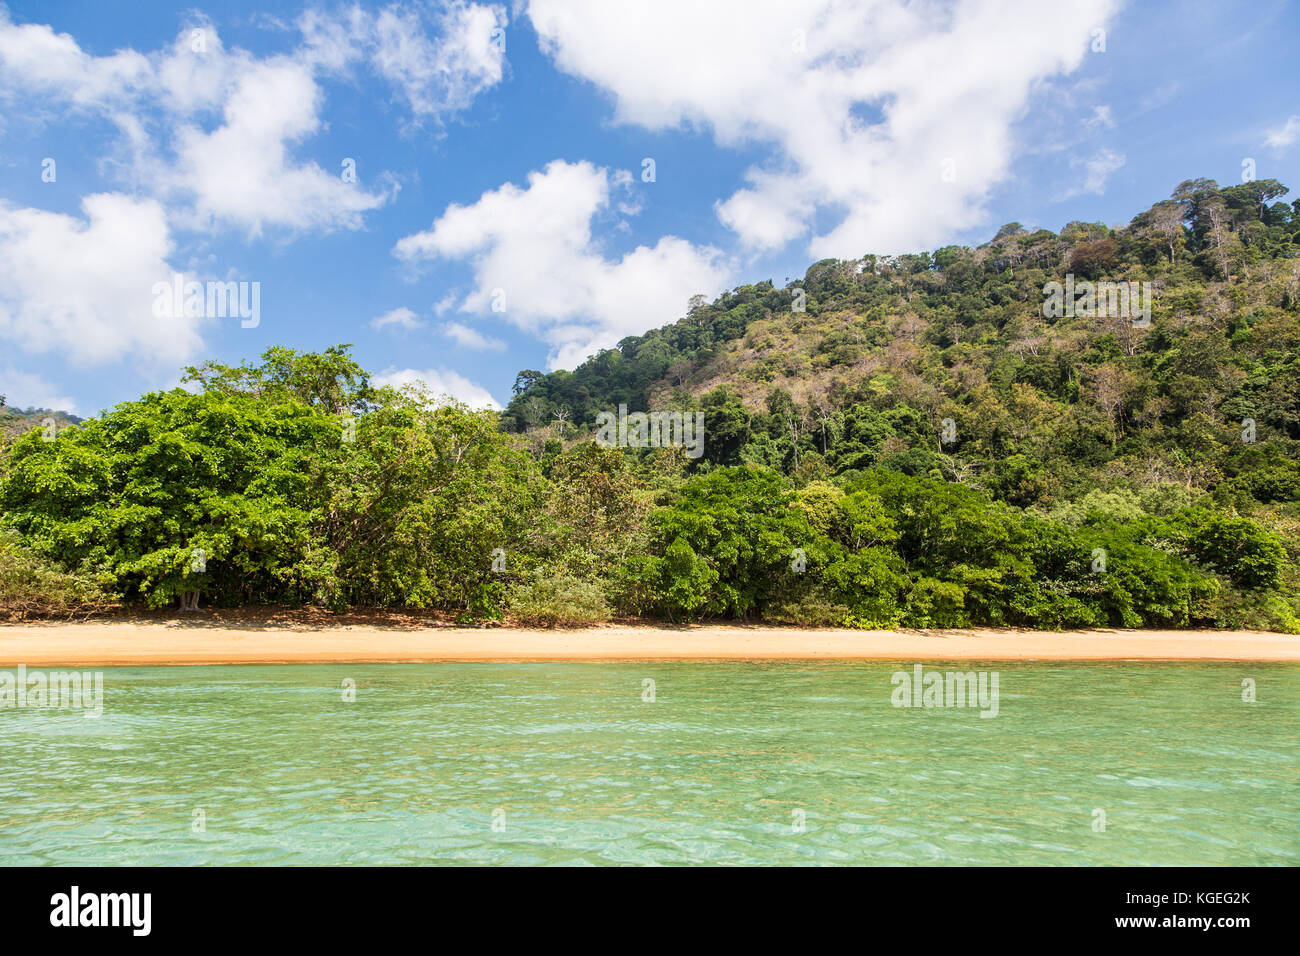 Idyllic empty beach in Tioman island in the South China Sea in Malaysia on a sunny day in Southeast Asia. - Stock Image